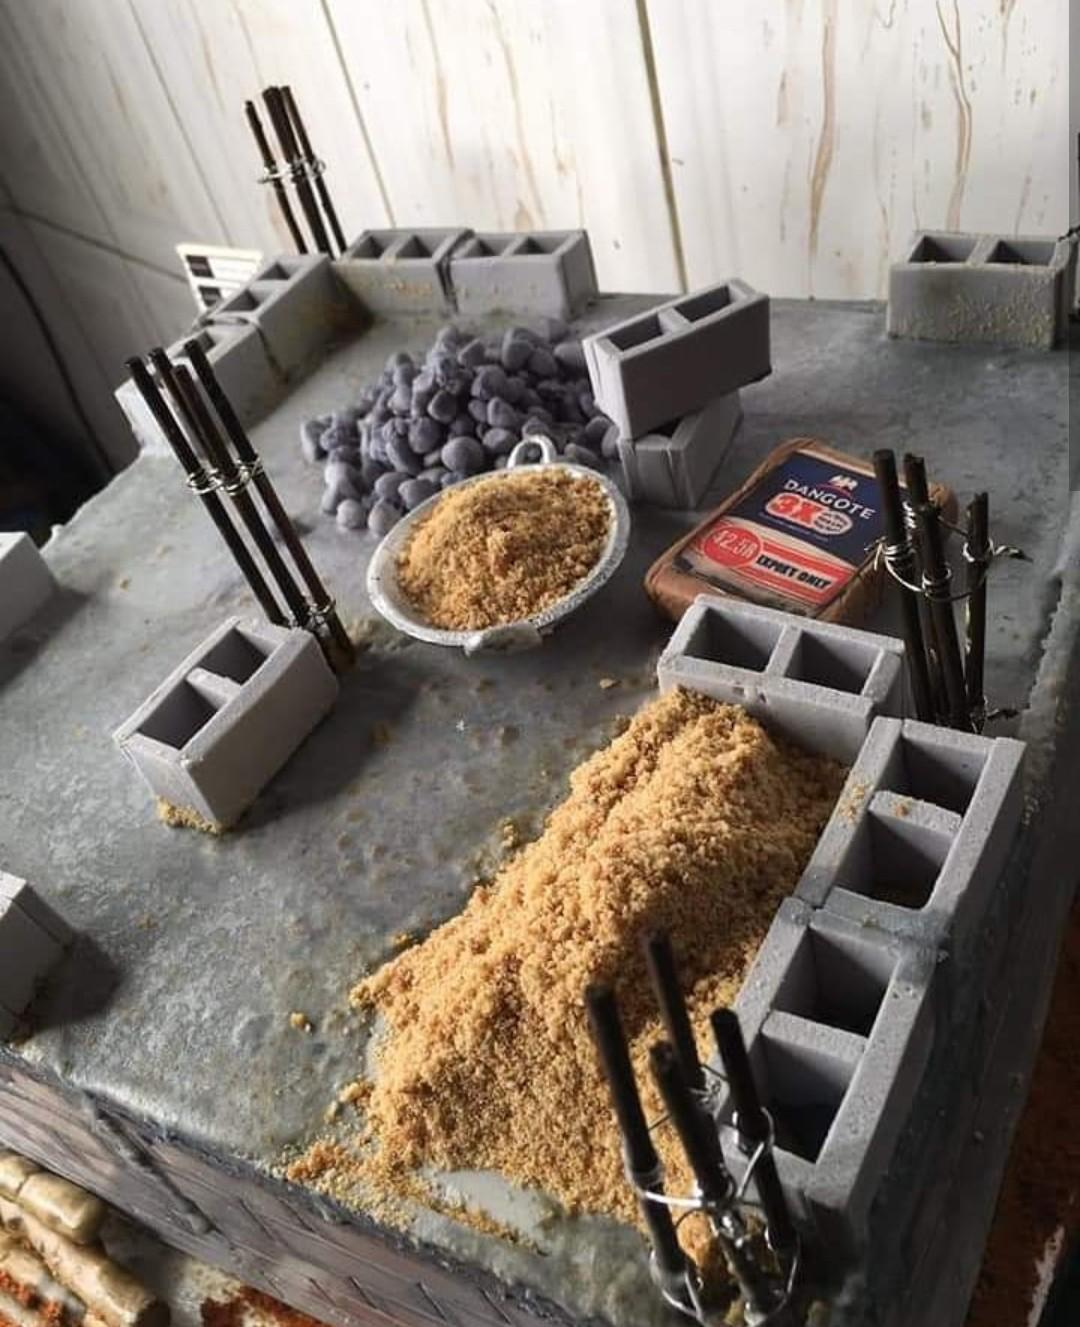 Talented Baker Shares Photos Of Cake Designed To Look Like An Uncompleted Building